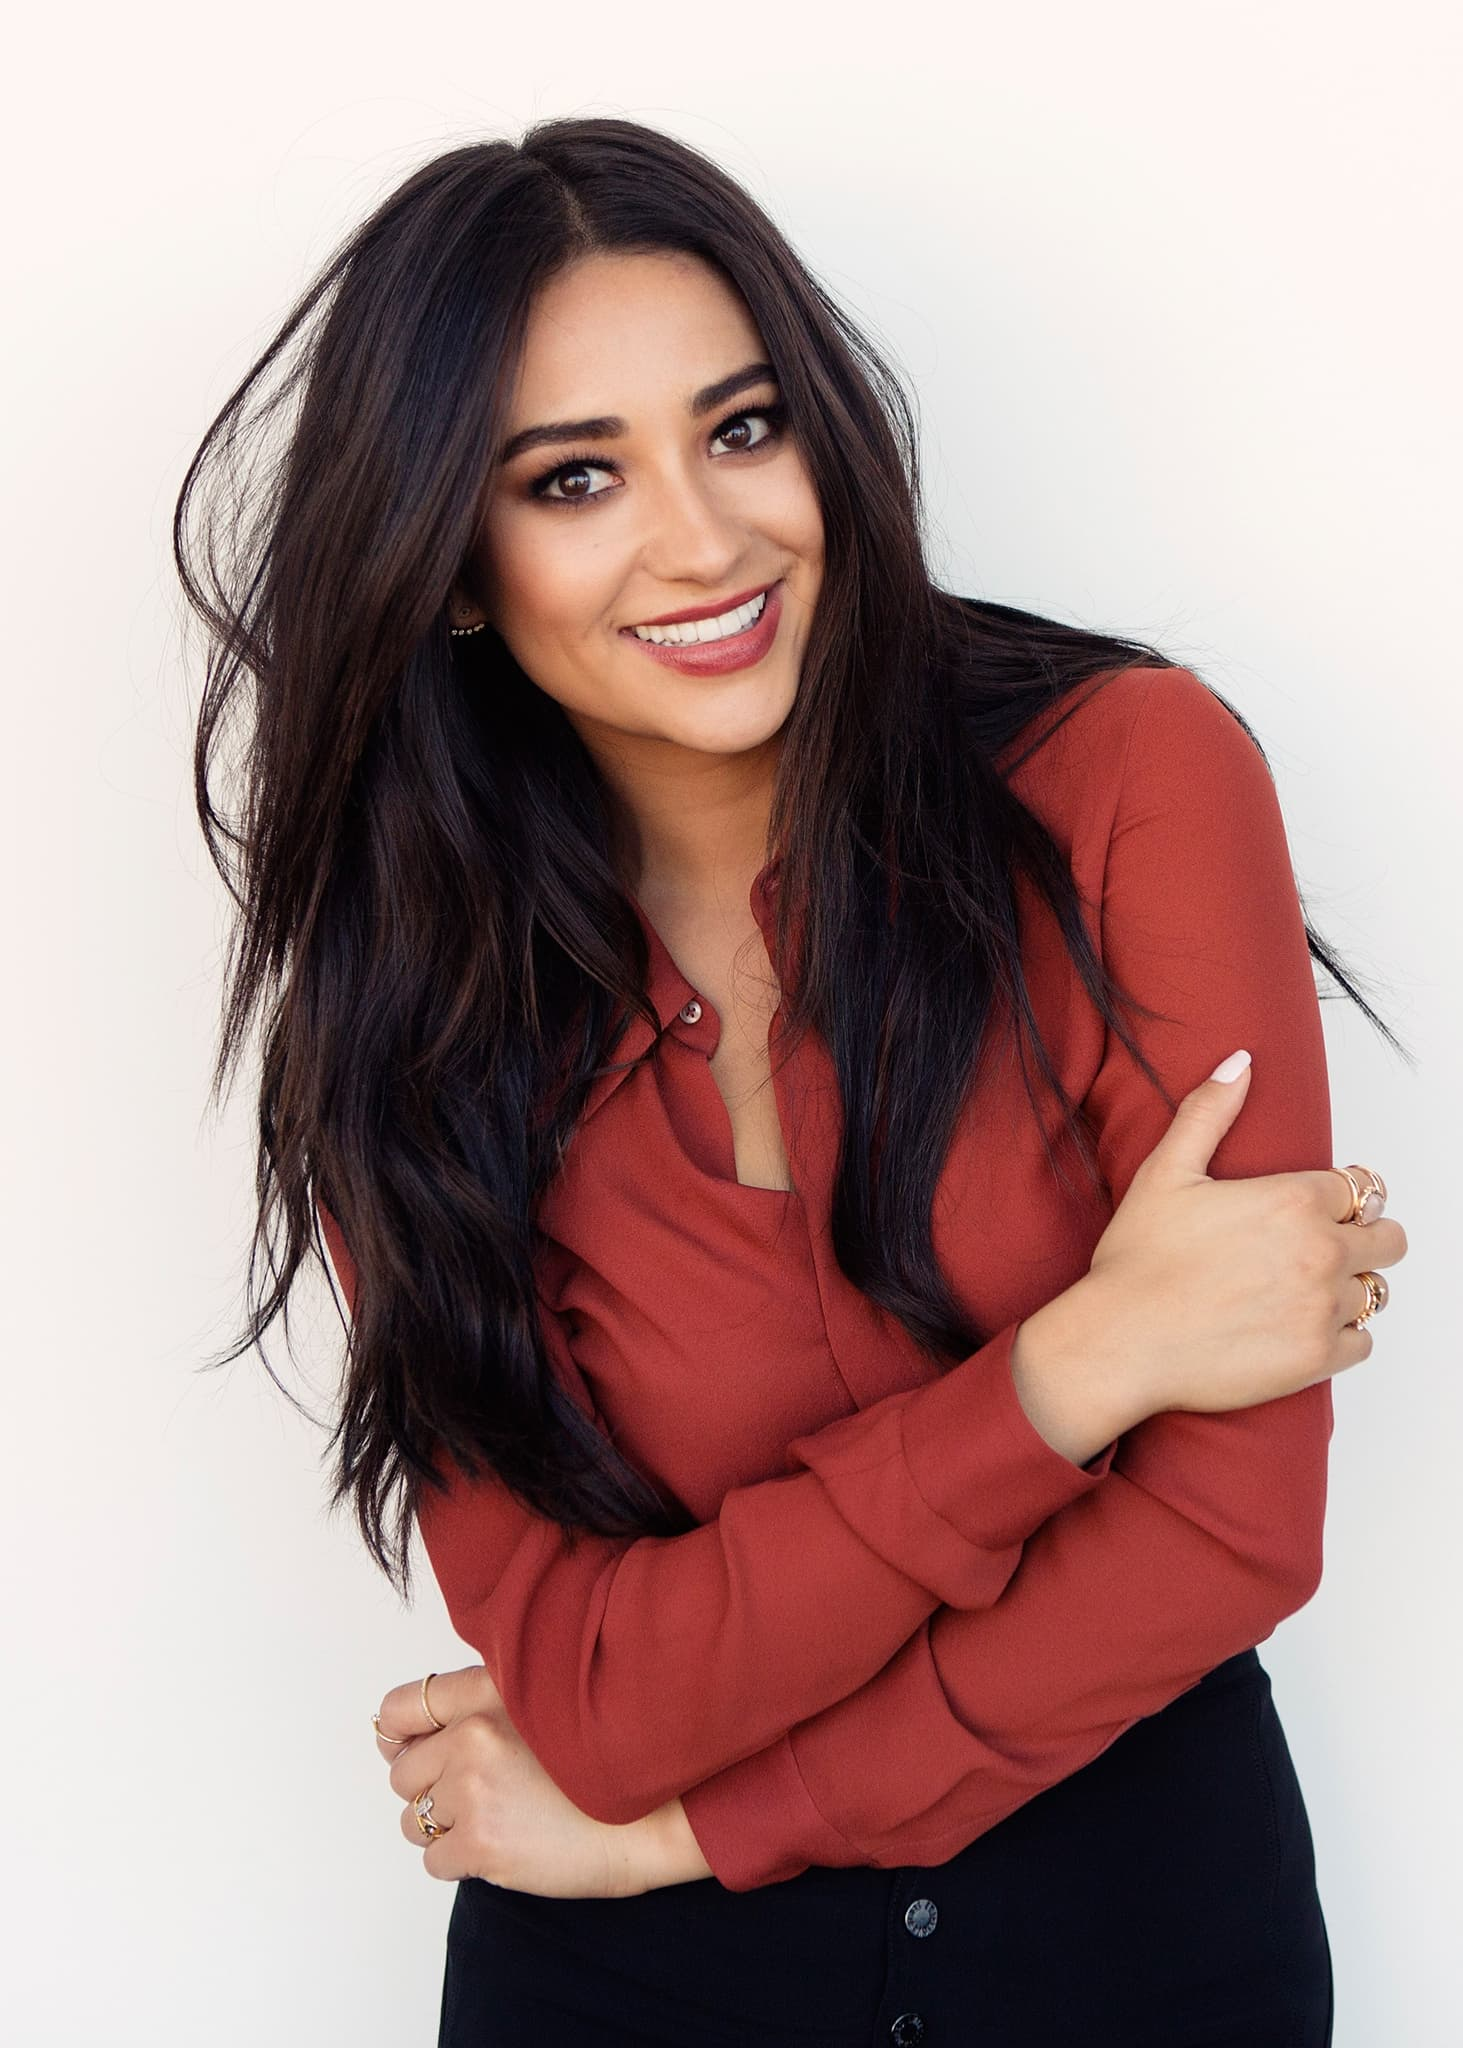 funny Shay Mitchell for iPhone wallpapers